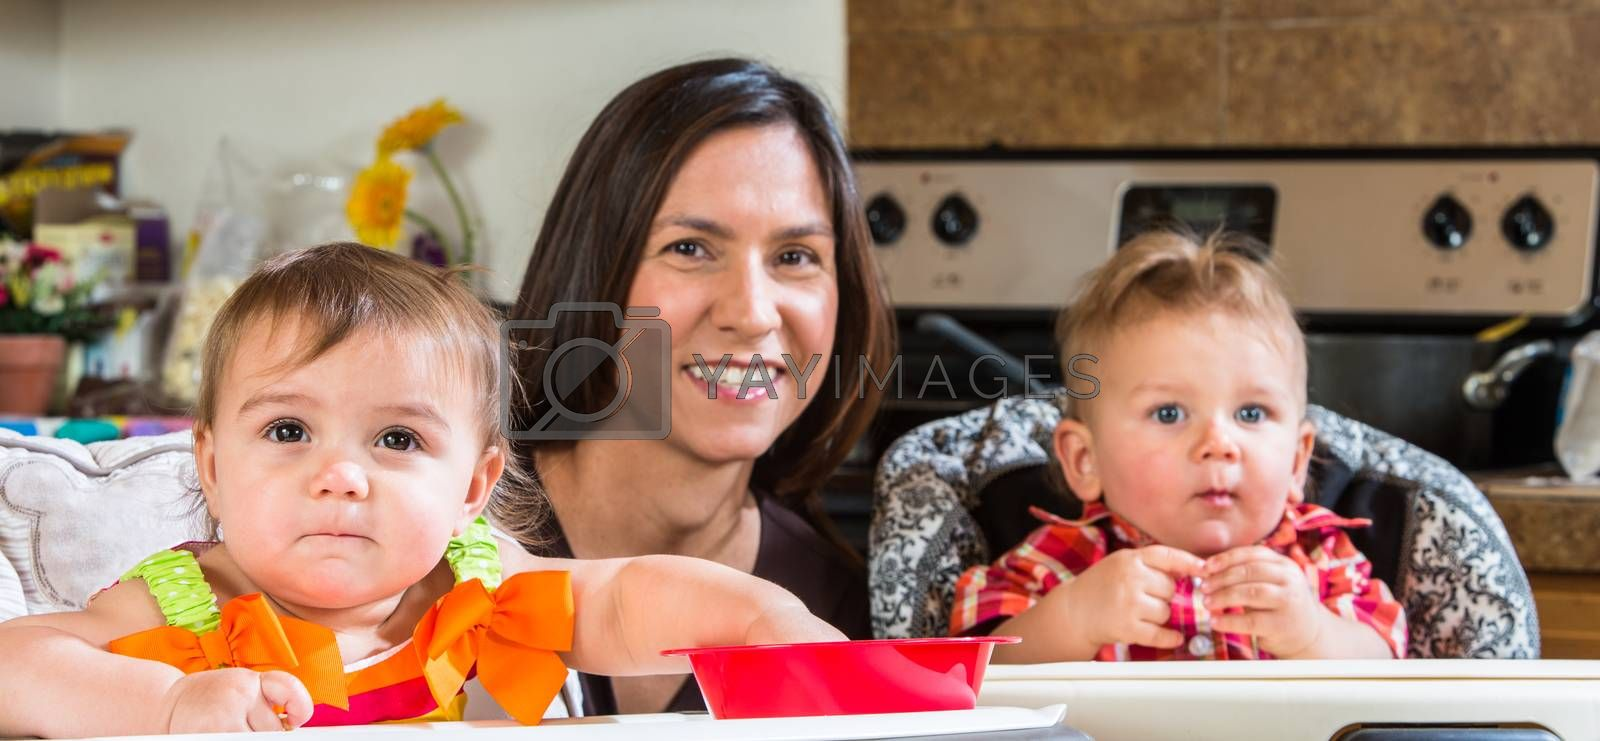 Mother Smiles With Babies by Creatista